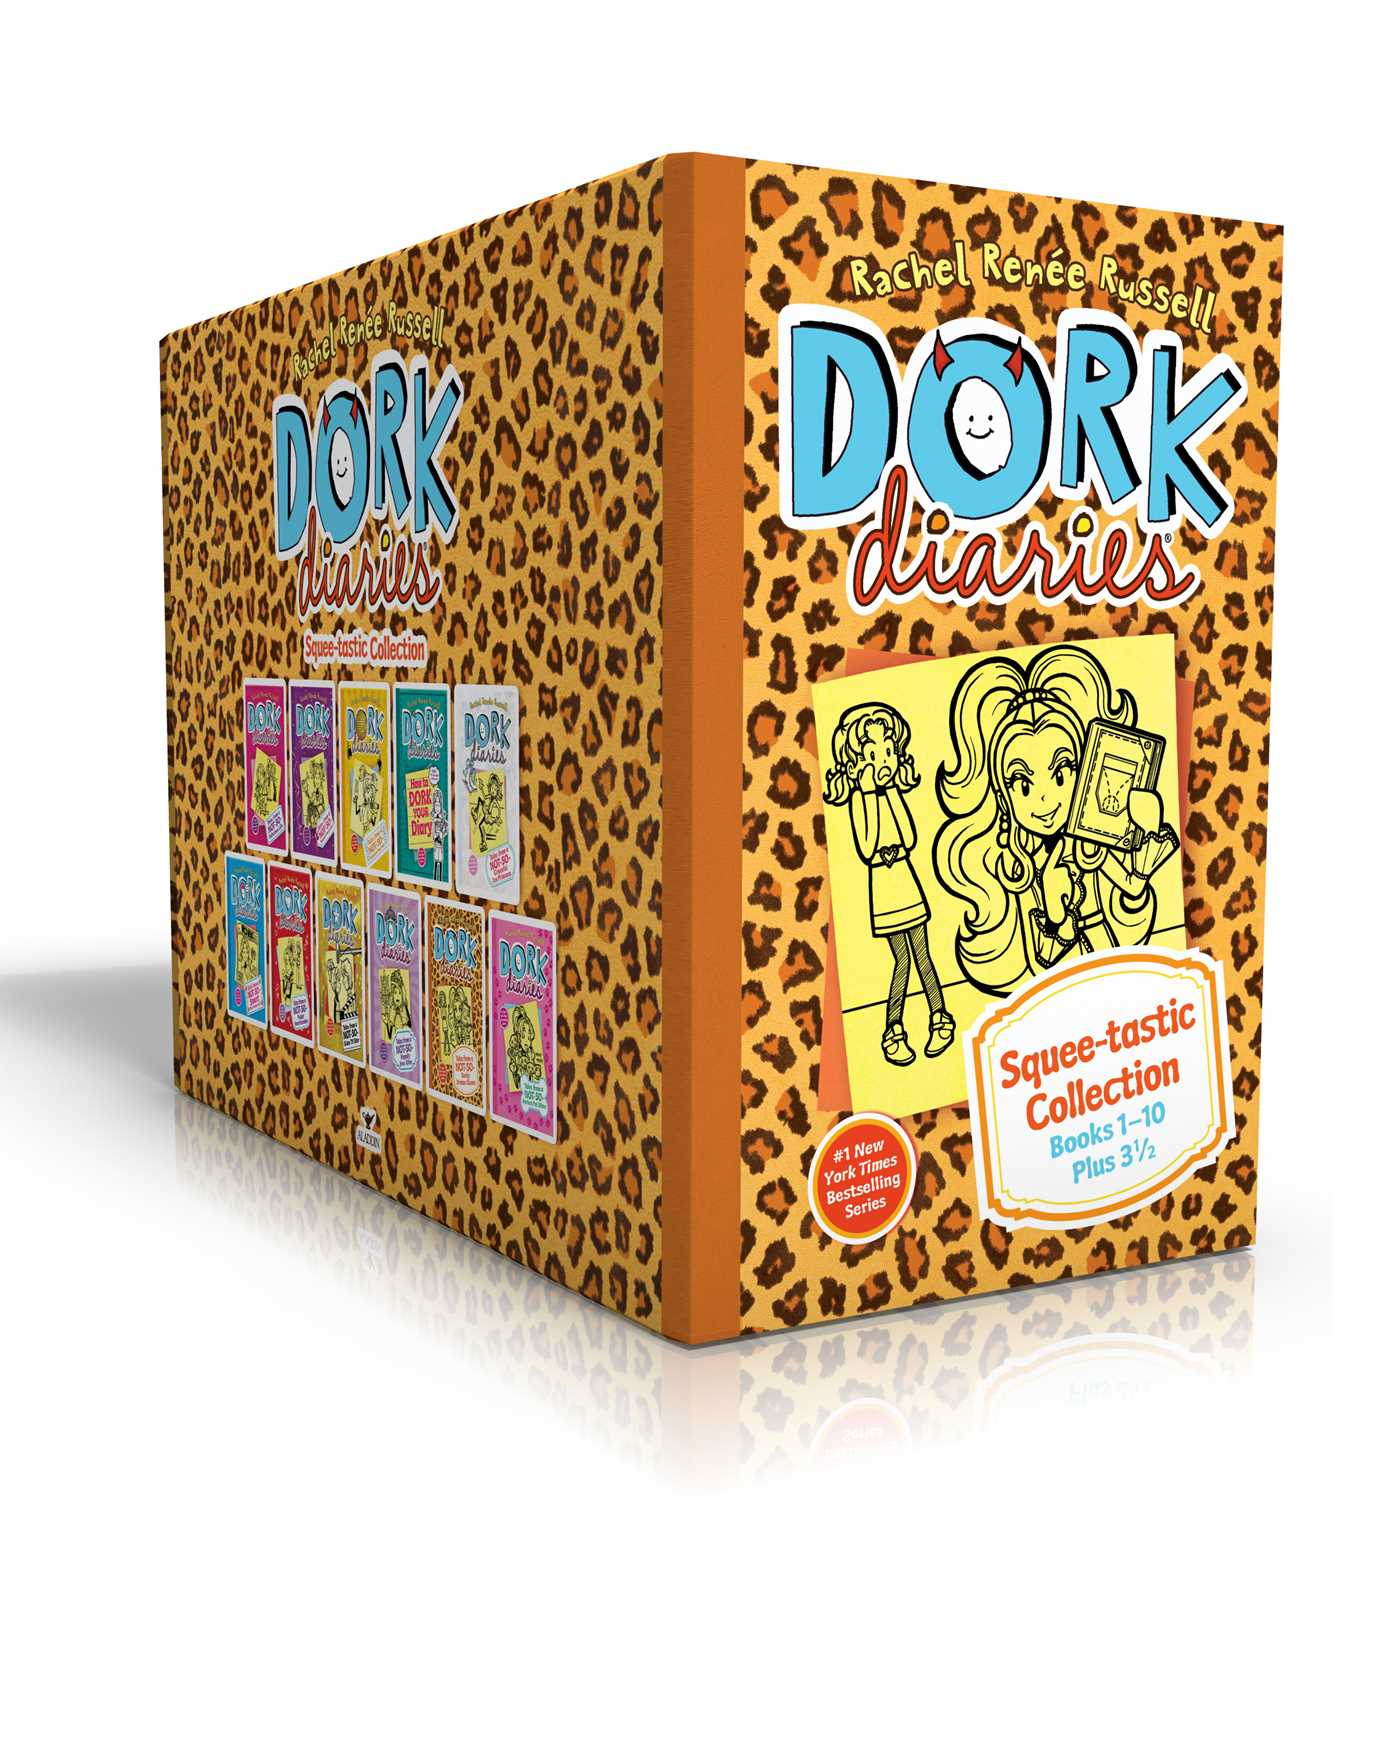 Dork diaries squee tastic collection books 1 10 plus 3 1 2 9781481468879 hr